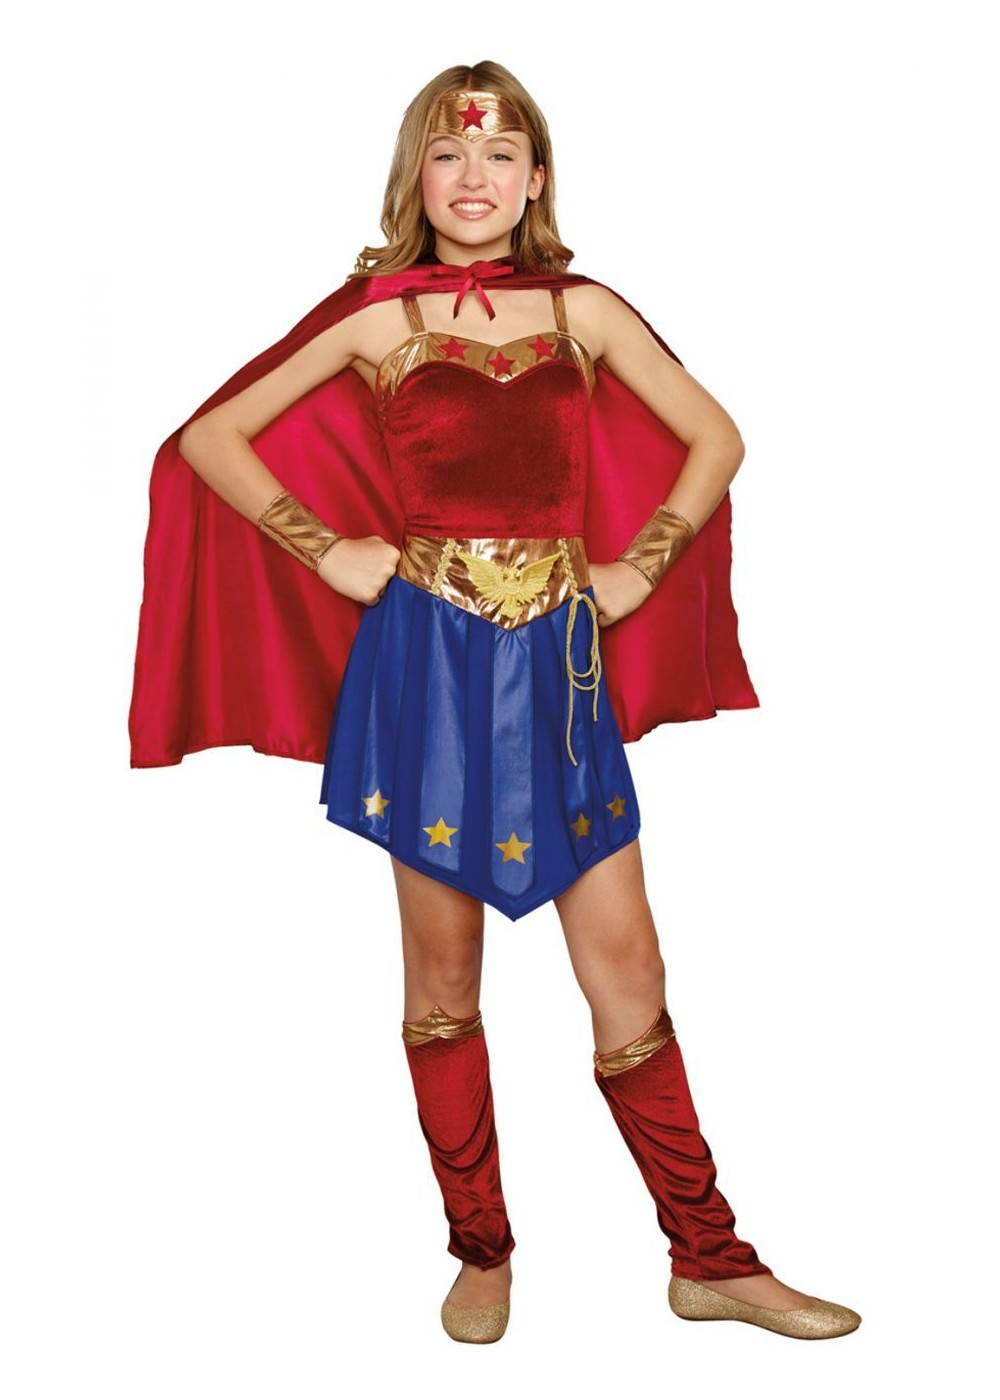 Royal V ire Girl Costume 536 further Just Clowning Around Girls Costume Ptjcagc likewise Freddy Krueger Sweater Costume Ptxflrc also Toy Story Woody Costume Kit furthermore Wonder Cutie Tween Girls Superhero Costume. on costume jewelry of the 1950s